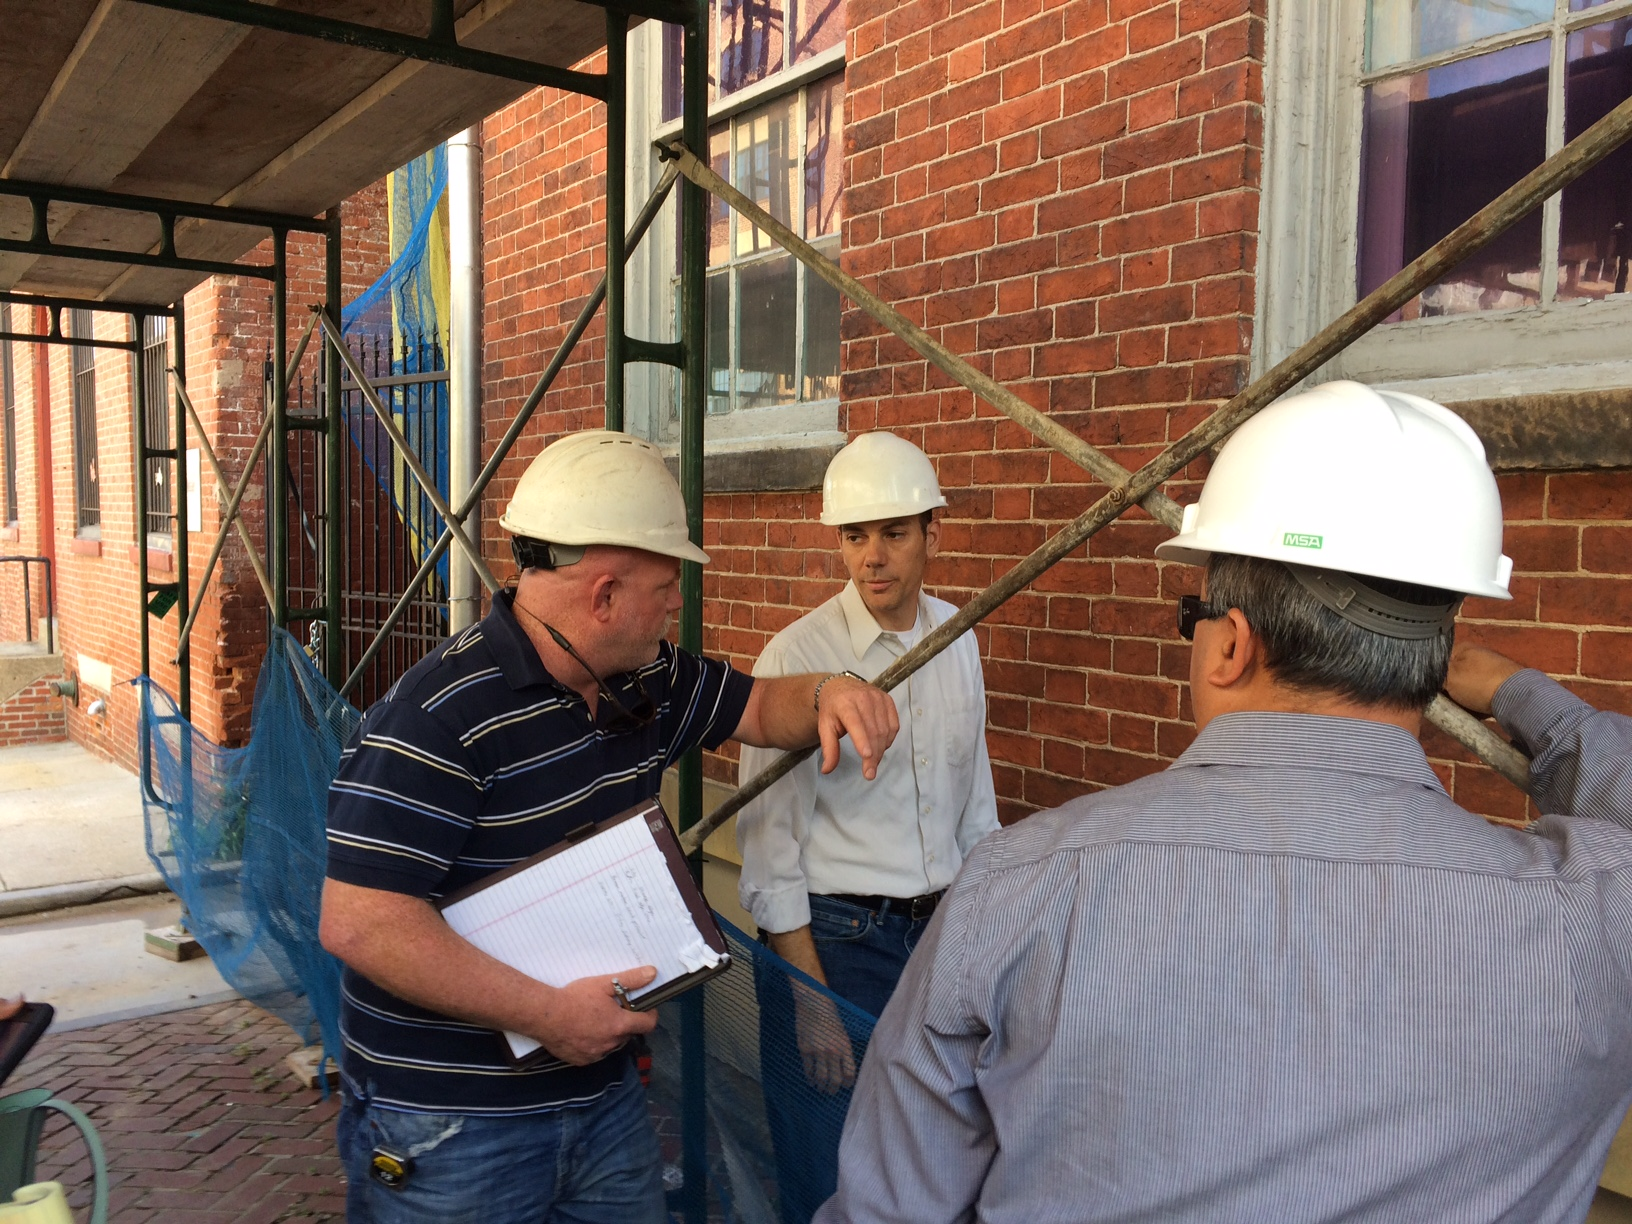 Ron Masotta, project architect, SM+P Architects, reviews the work with contractors and inspectors.